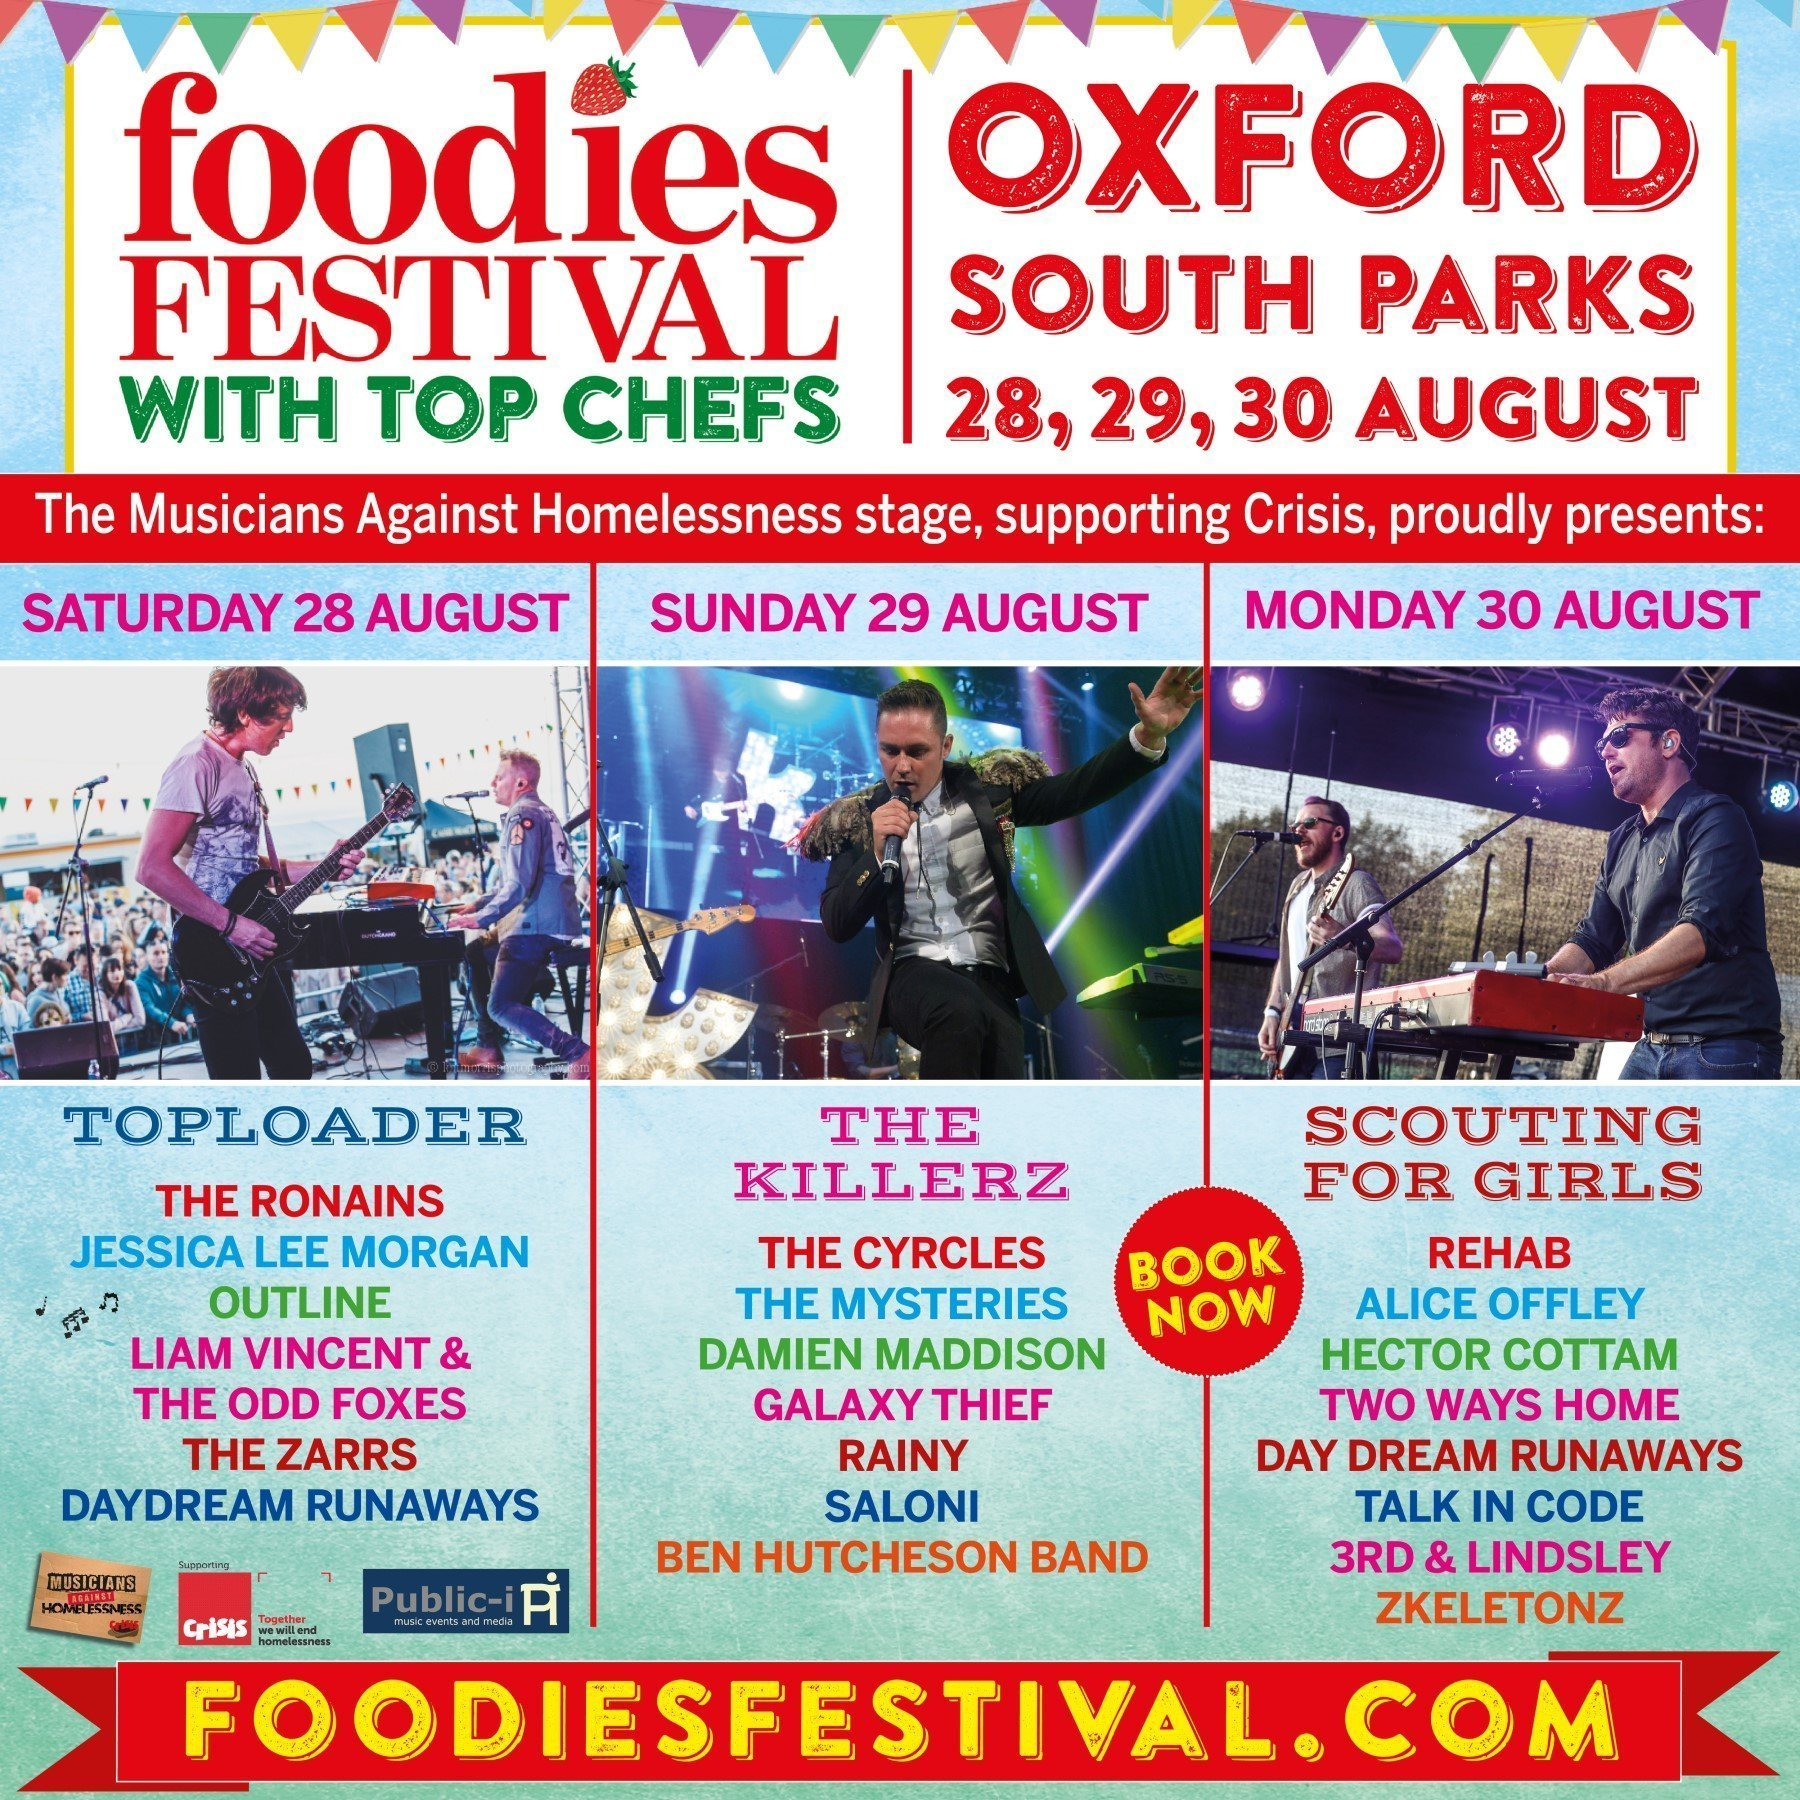 Foodies Festival Oxford 2021 Poster